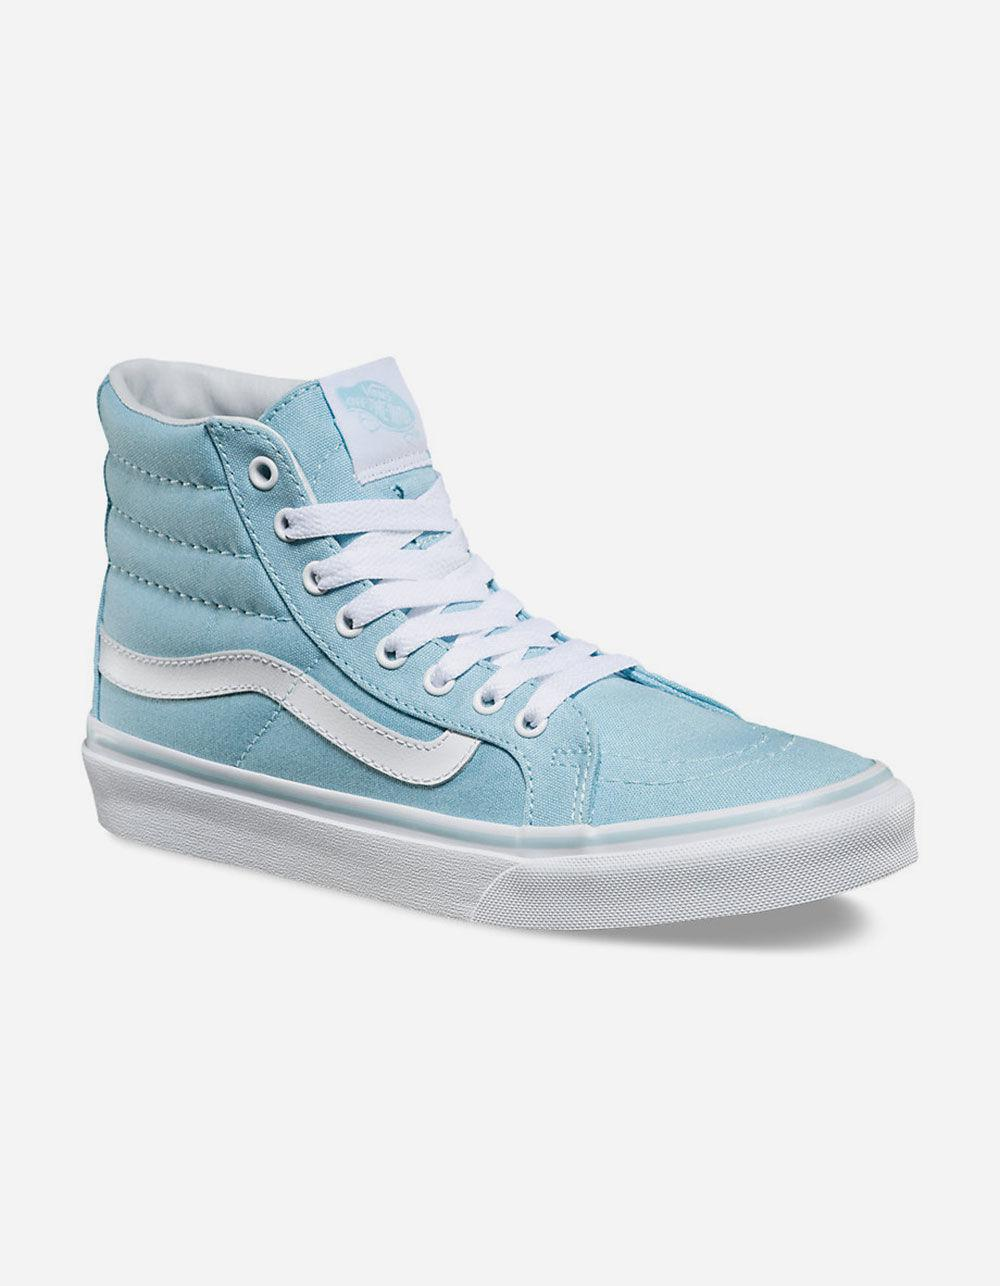 c70c3b2ece Lyst - Vans Sk8-hi Slim Crystal Blue   True White Womens Shoes in Blue